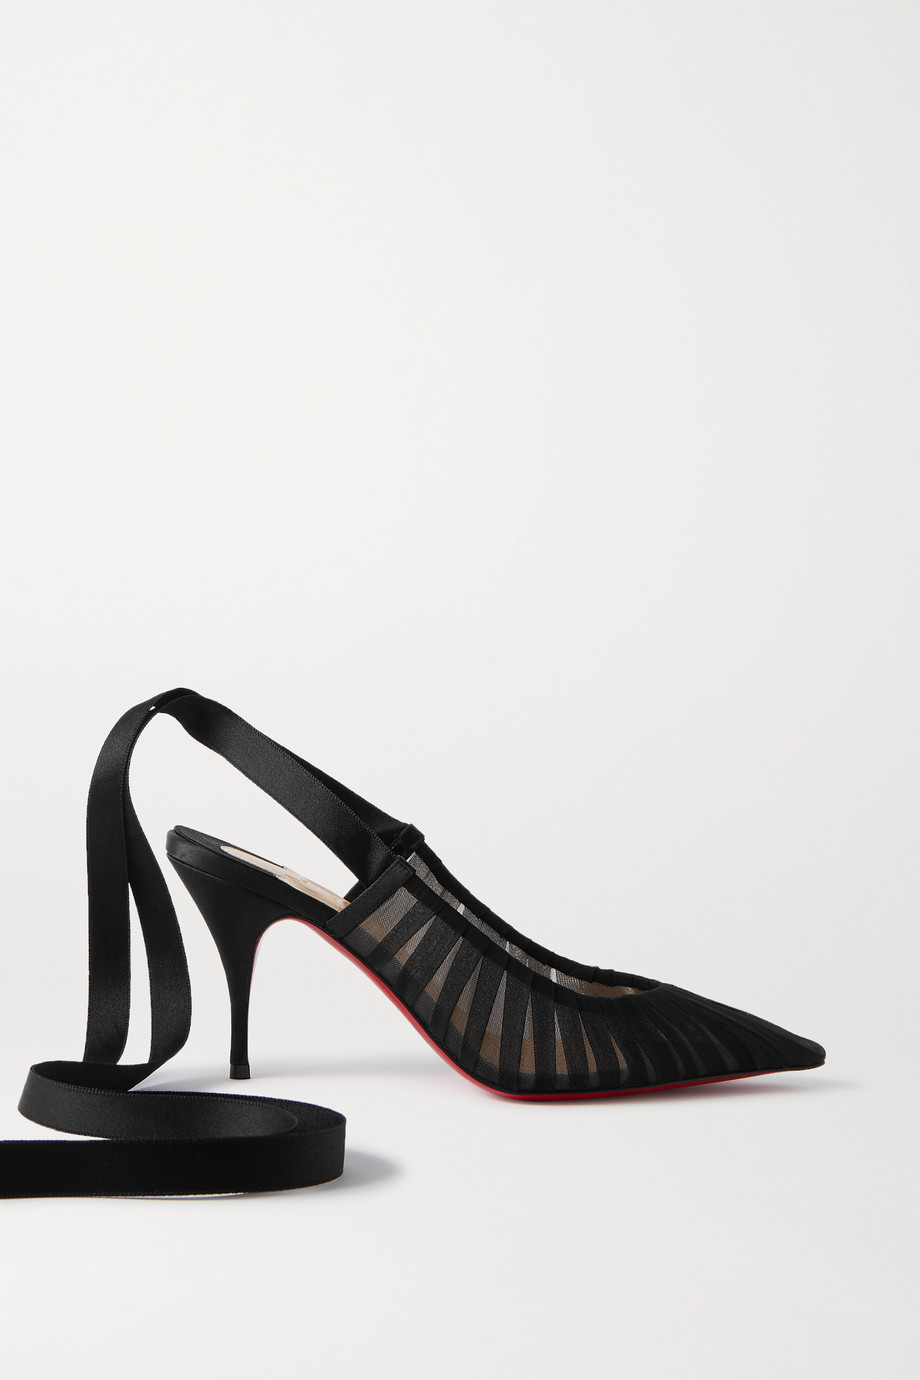 CHRISTIAN LOUBOUTIN Goya Ruban 80 chiffon and satin pumps